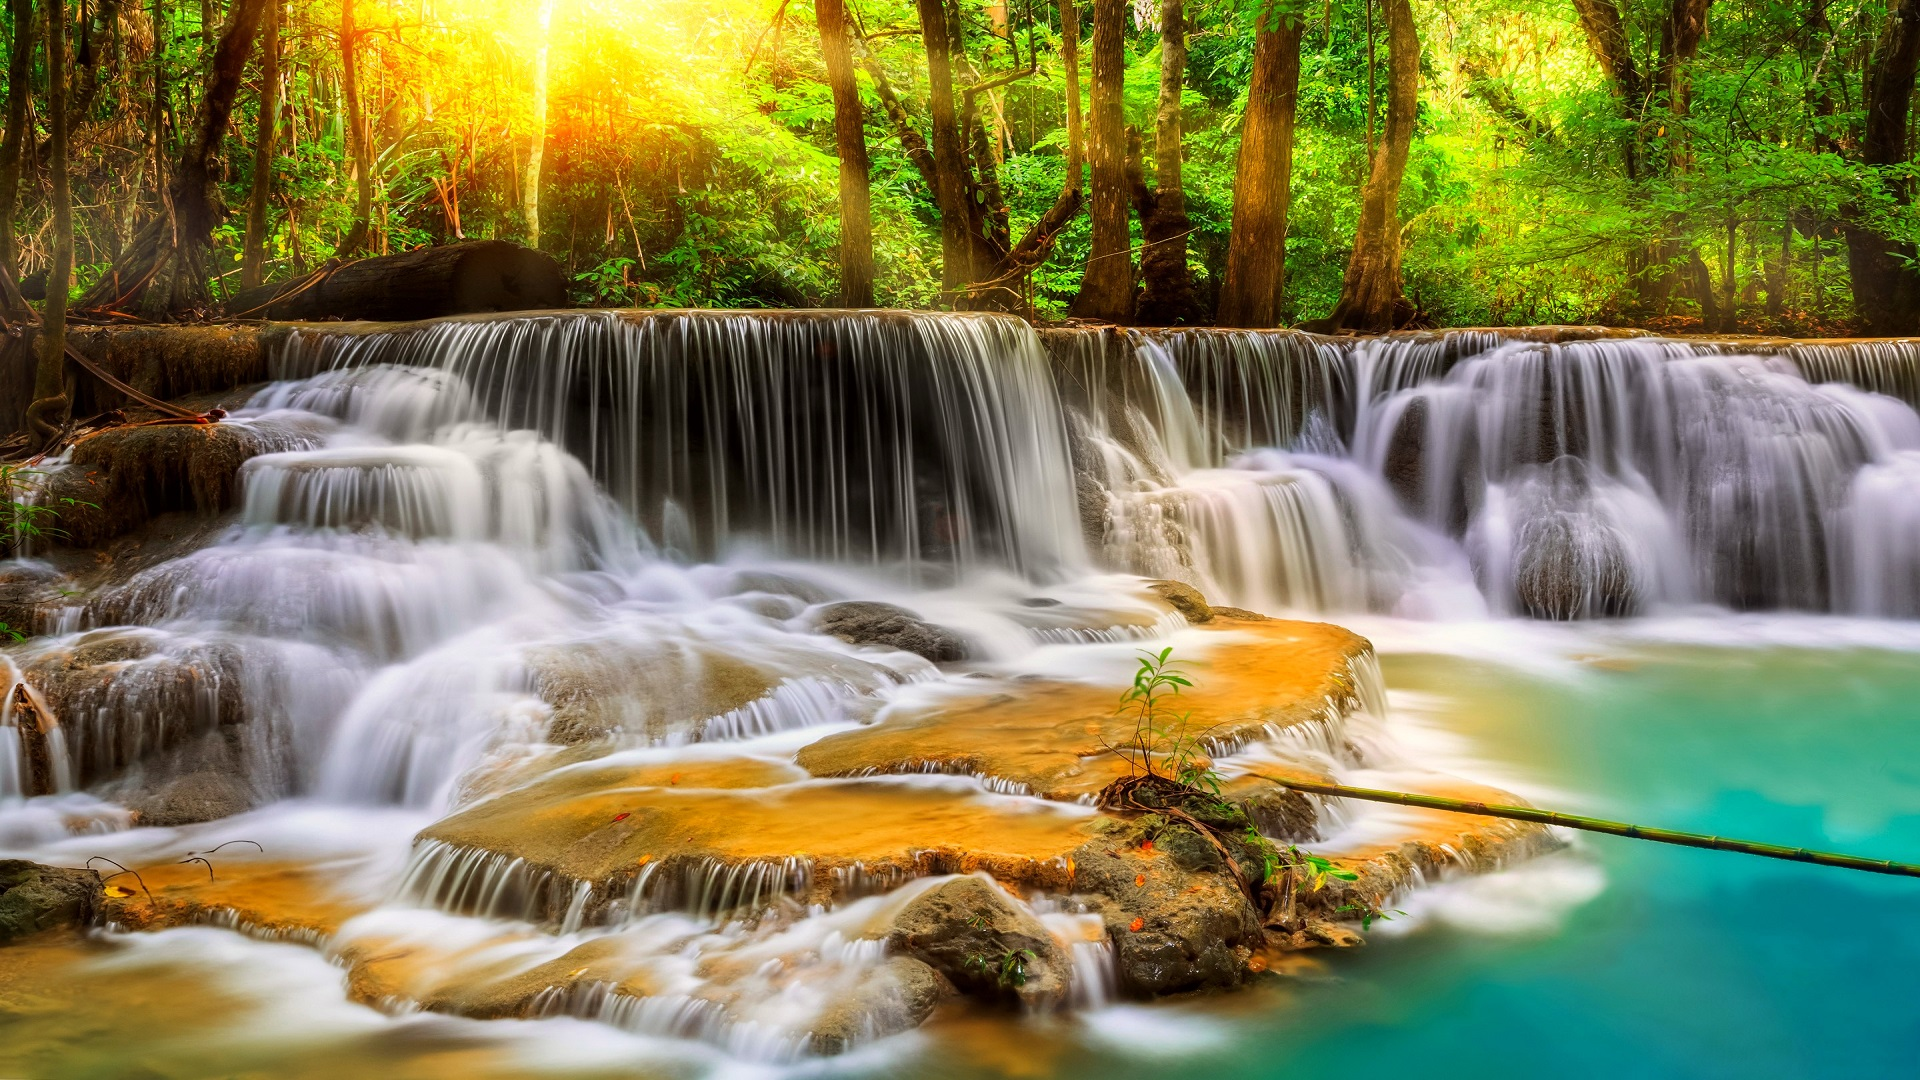 Waterfalls Beautiful Hd Wallpaper Free For Desktop